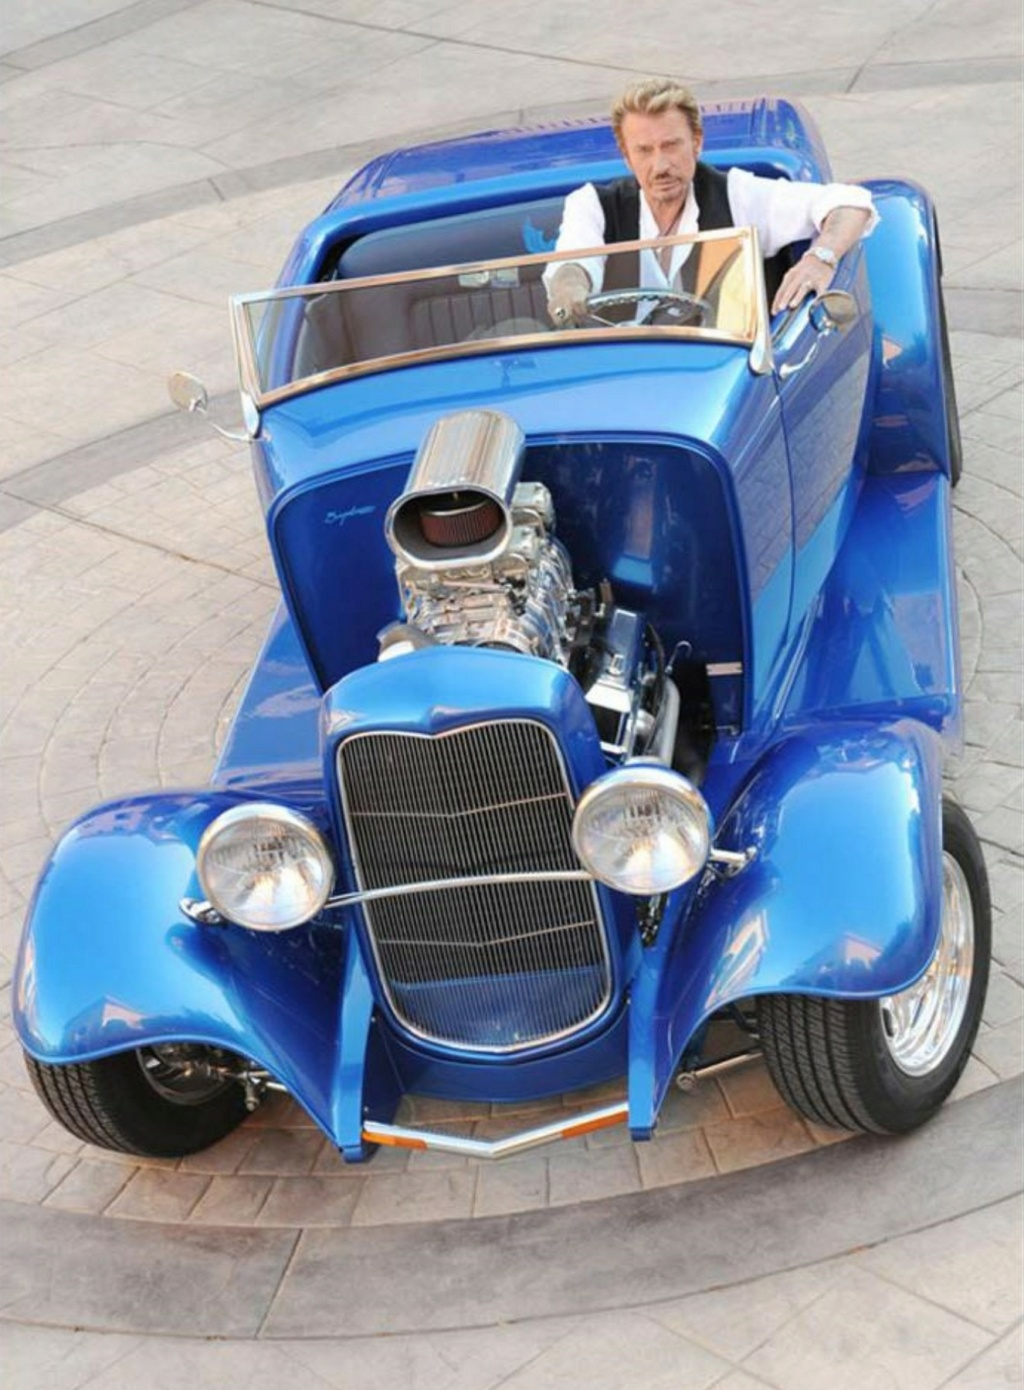 HOT ROD BLEU ELECTRIQUE DE JOHNNY HALLYDAY ( 2008 ) 12717510